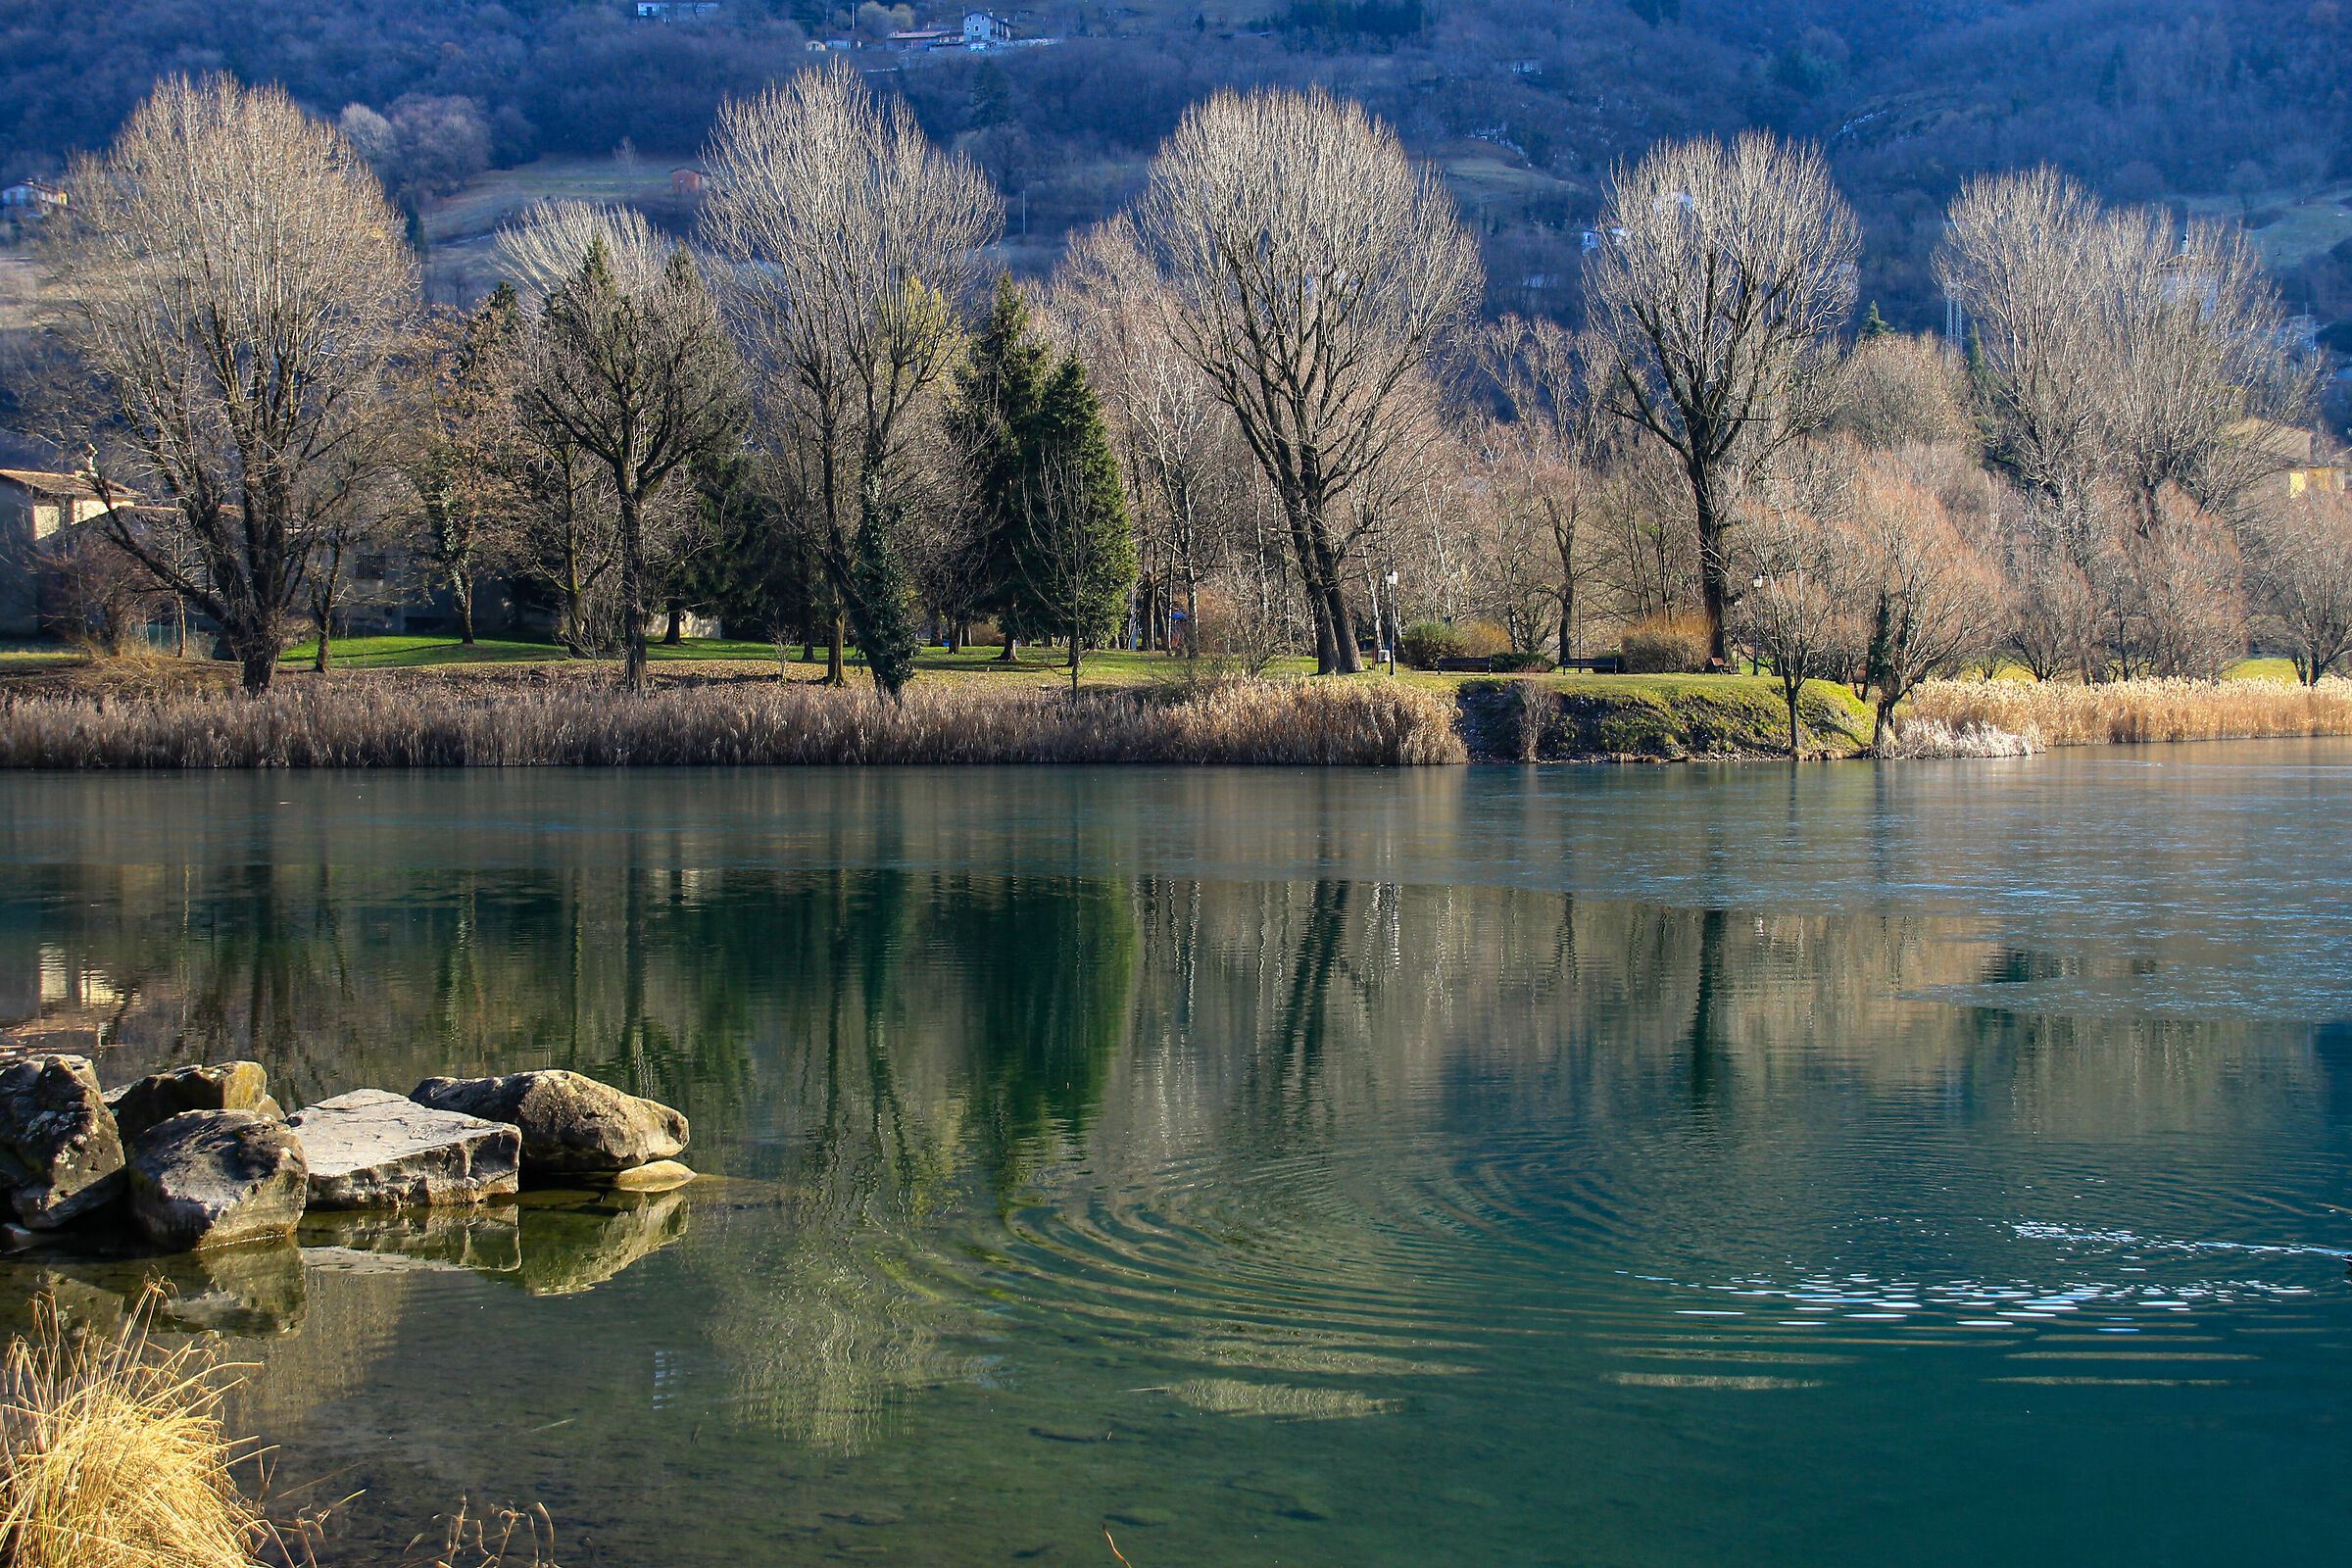 the tranquility of the lake...